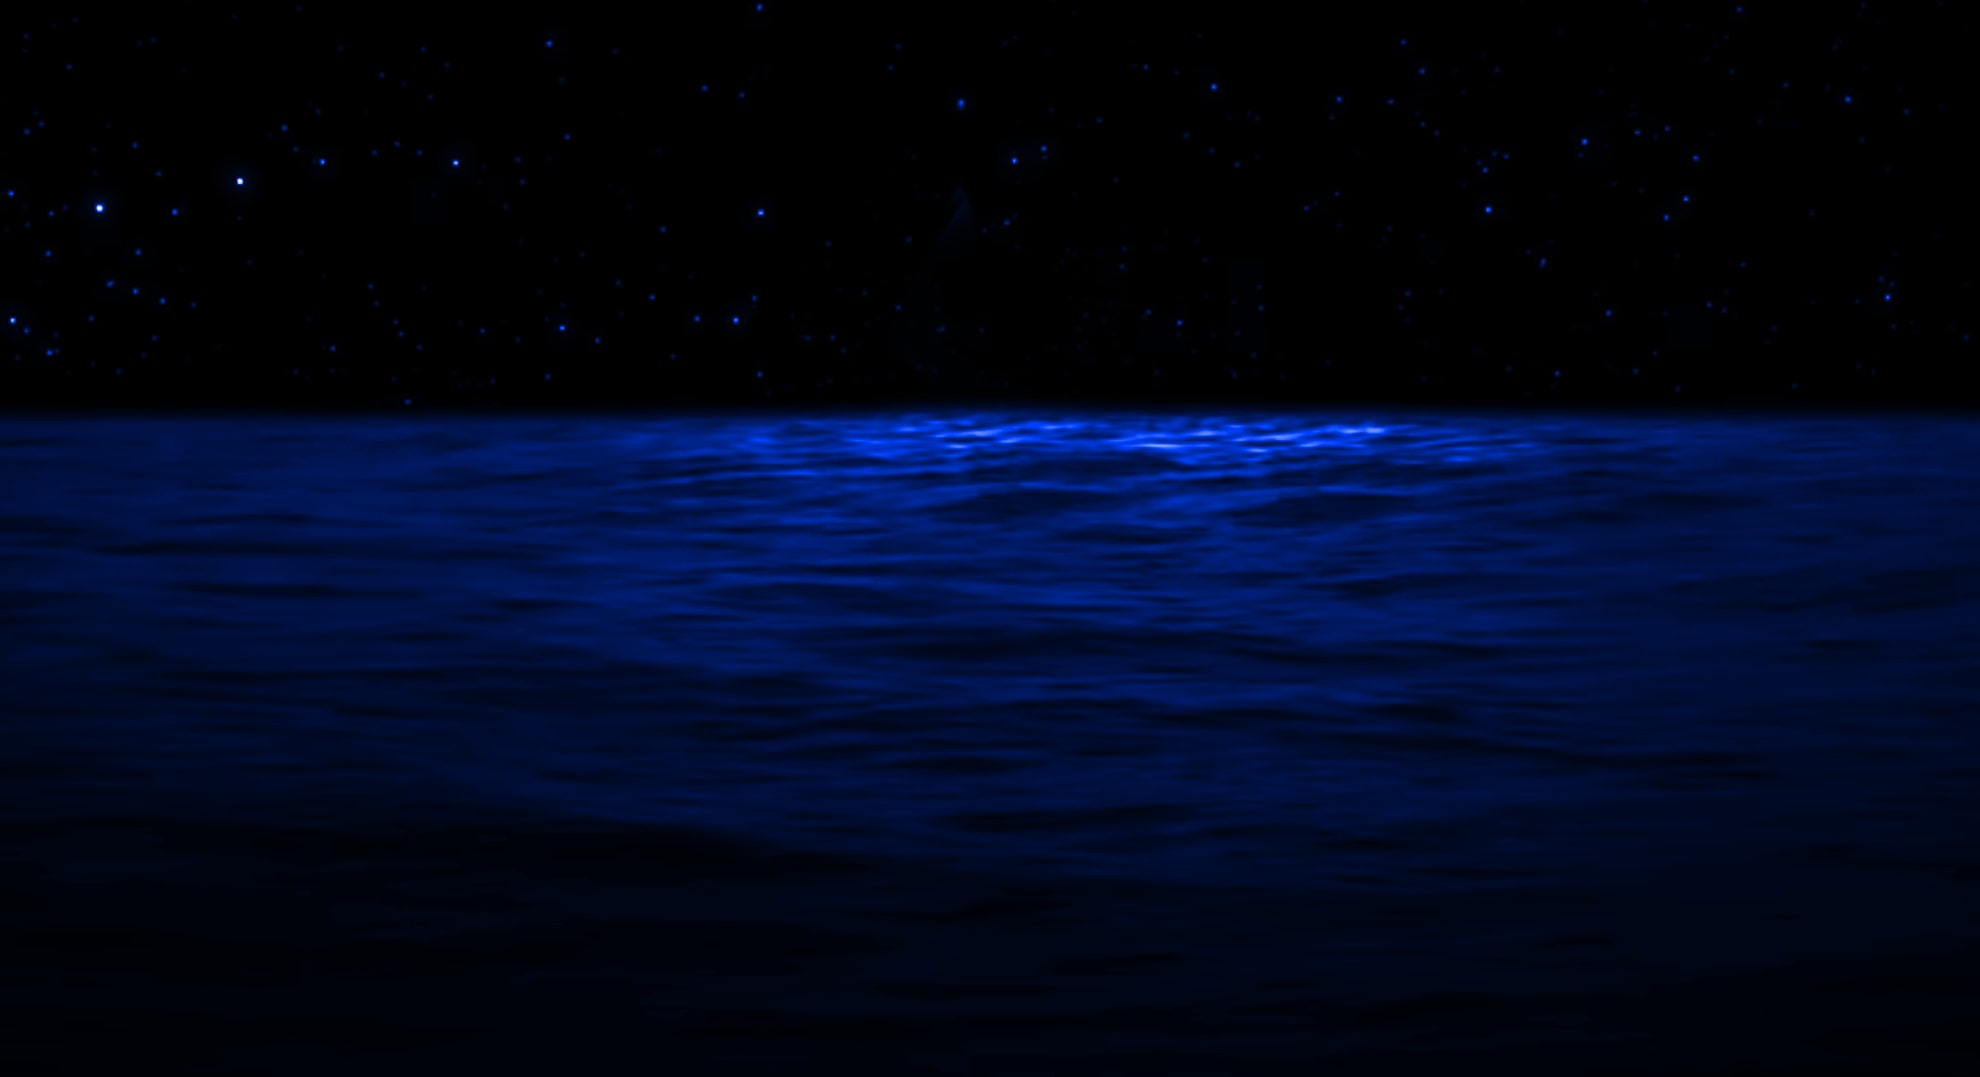 Night River Water Background